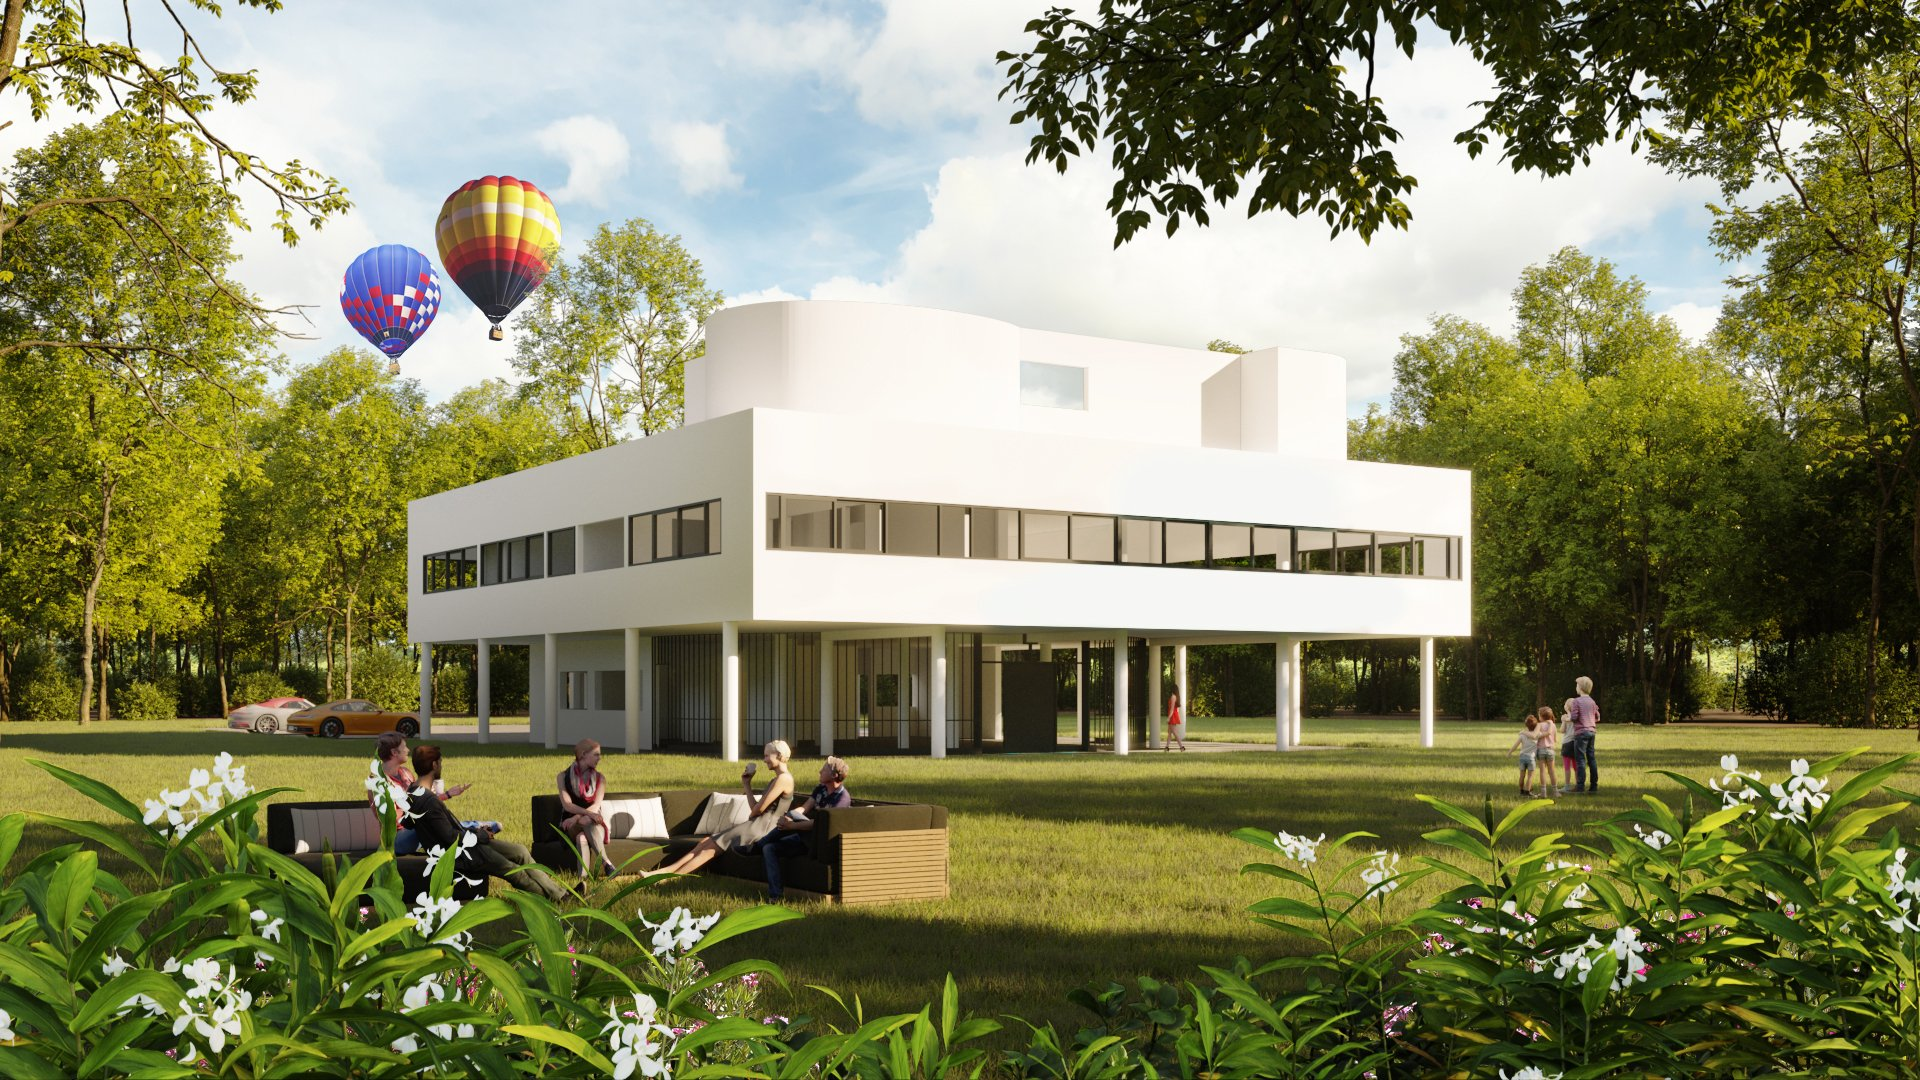 CG Exterior Render Showing a Building and Many Contextual Details